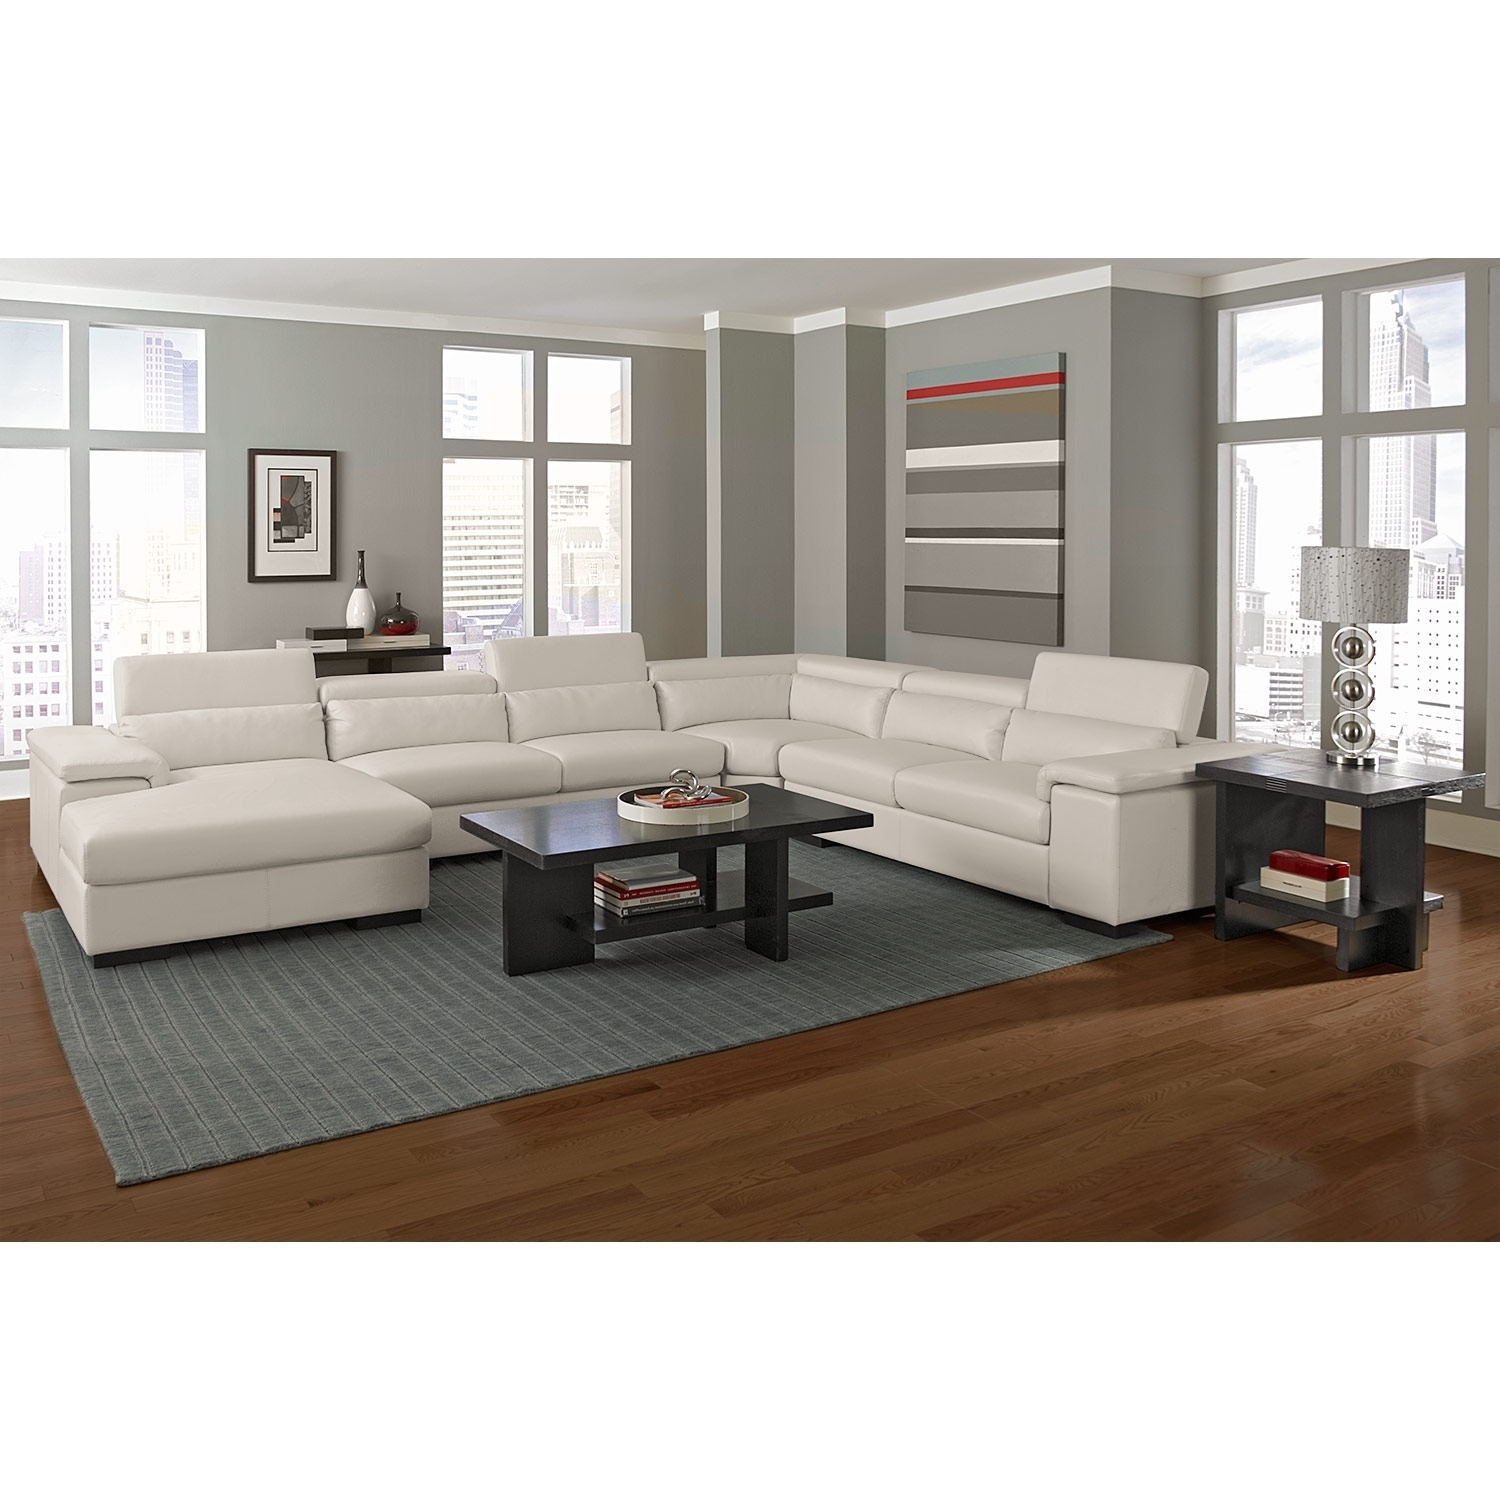 Top 10 Of Murfreesboro Tn Sectional Sofas